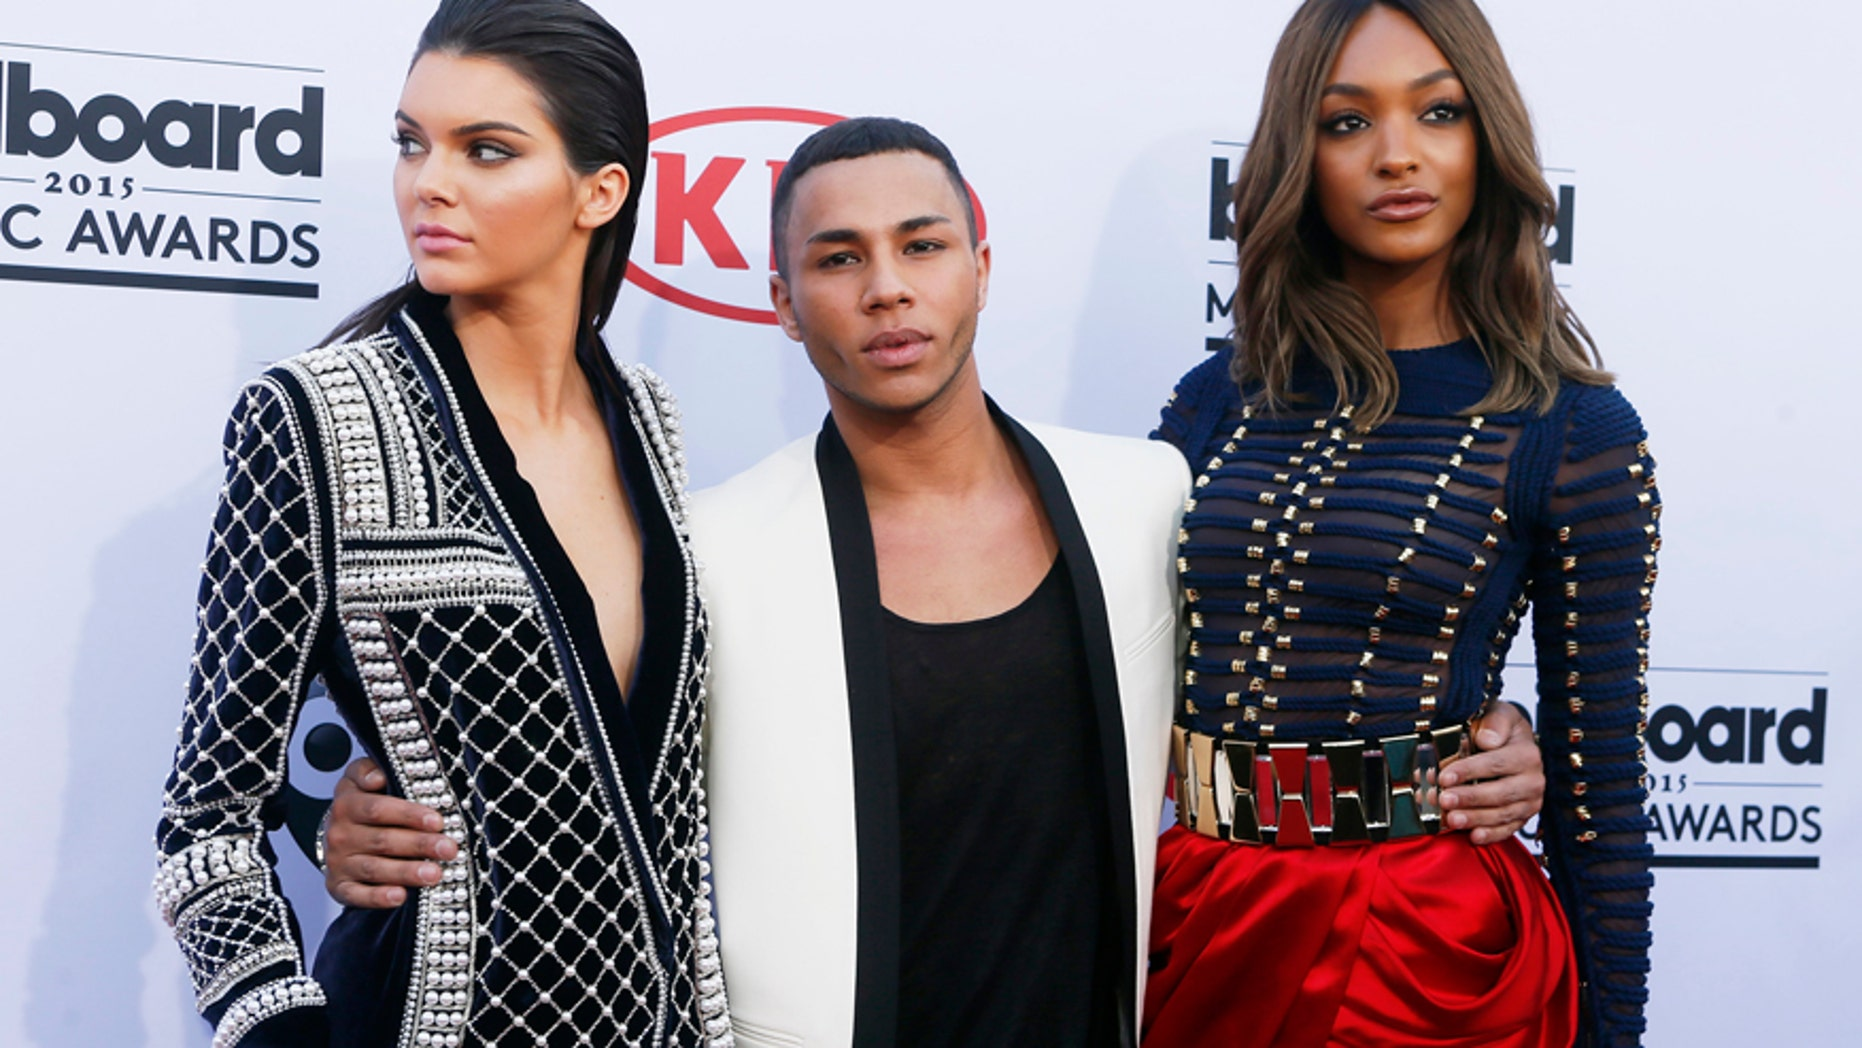 Model Kendall Jenner (L), designer Olivier Rousteing and model Jourdan Dunn arrive in H&M Balmain pieces at the 2015 Billboard Music Awards in Las Vegas, Nevada May 17, 2015.